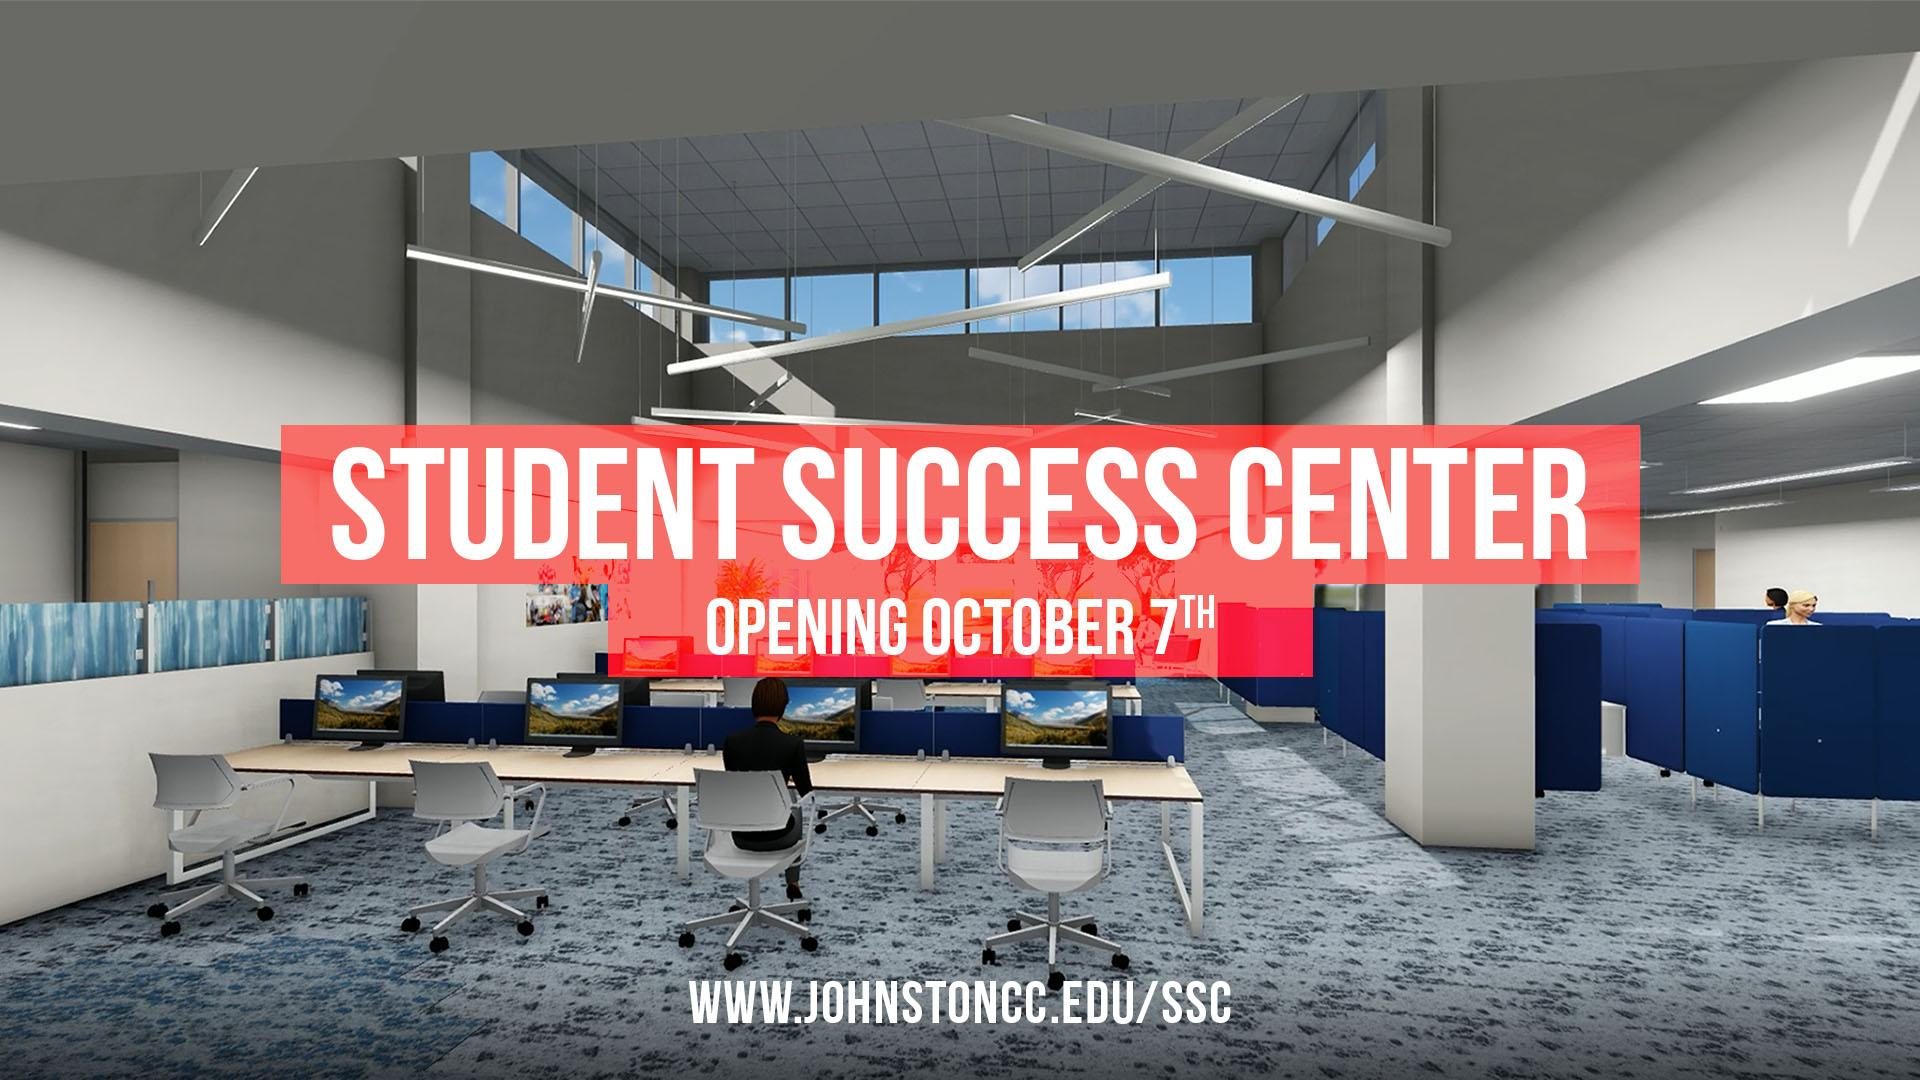 Student Success Center. Opening October 7th, 2019. Click here for more information